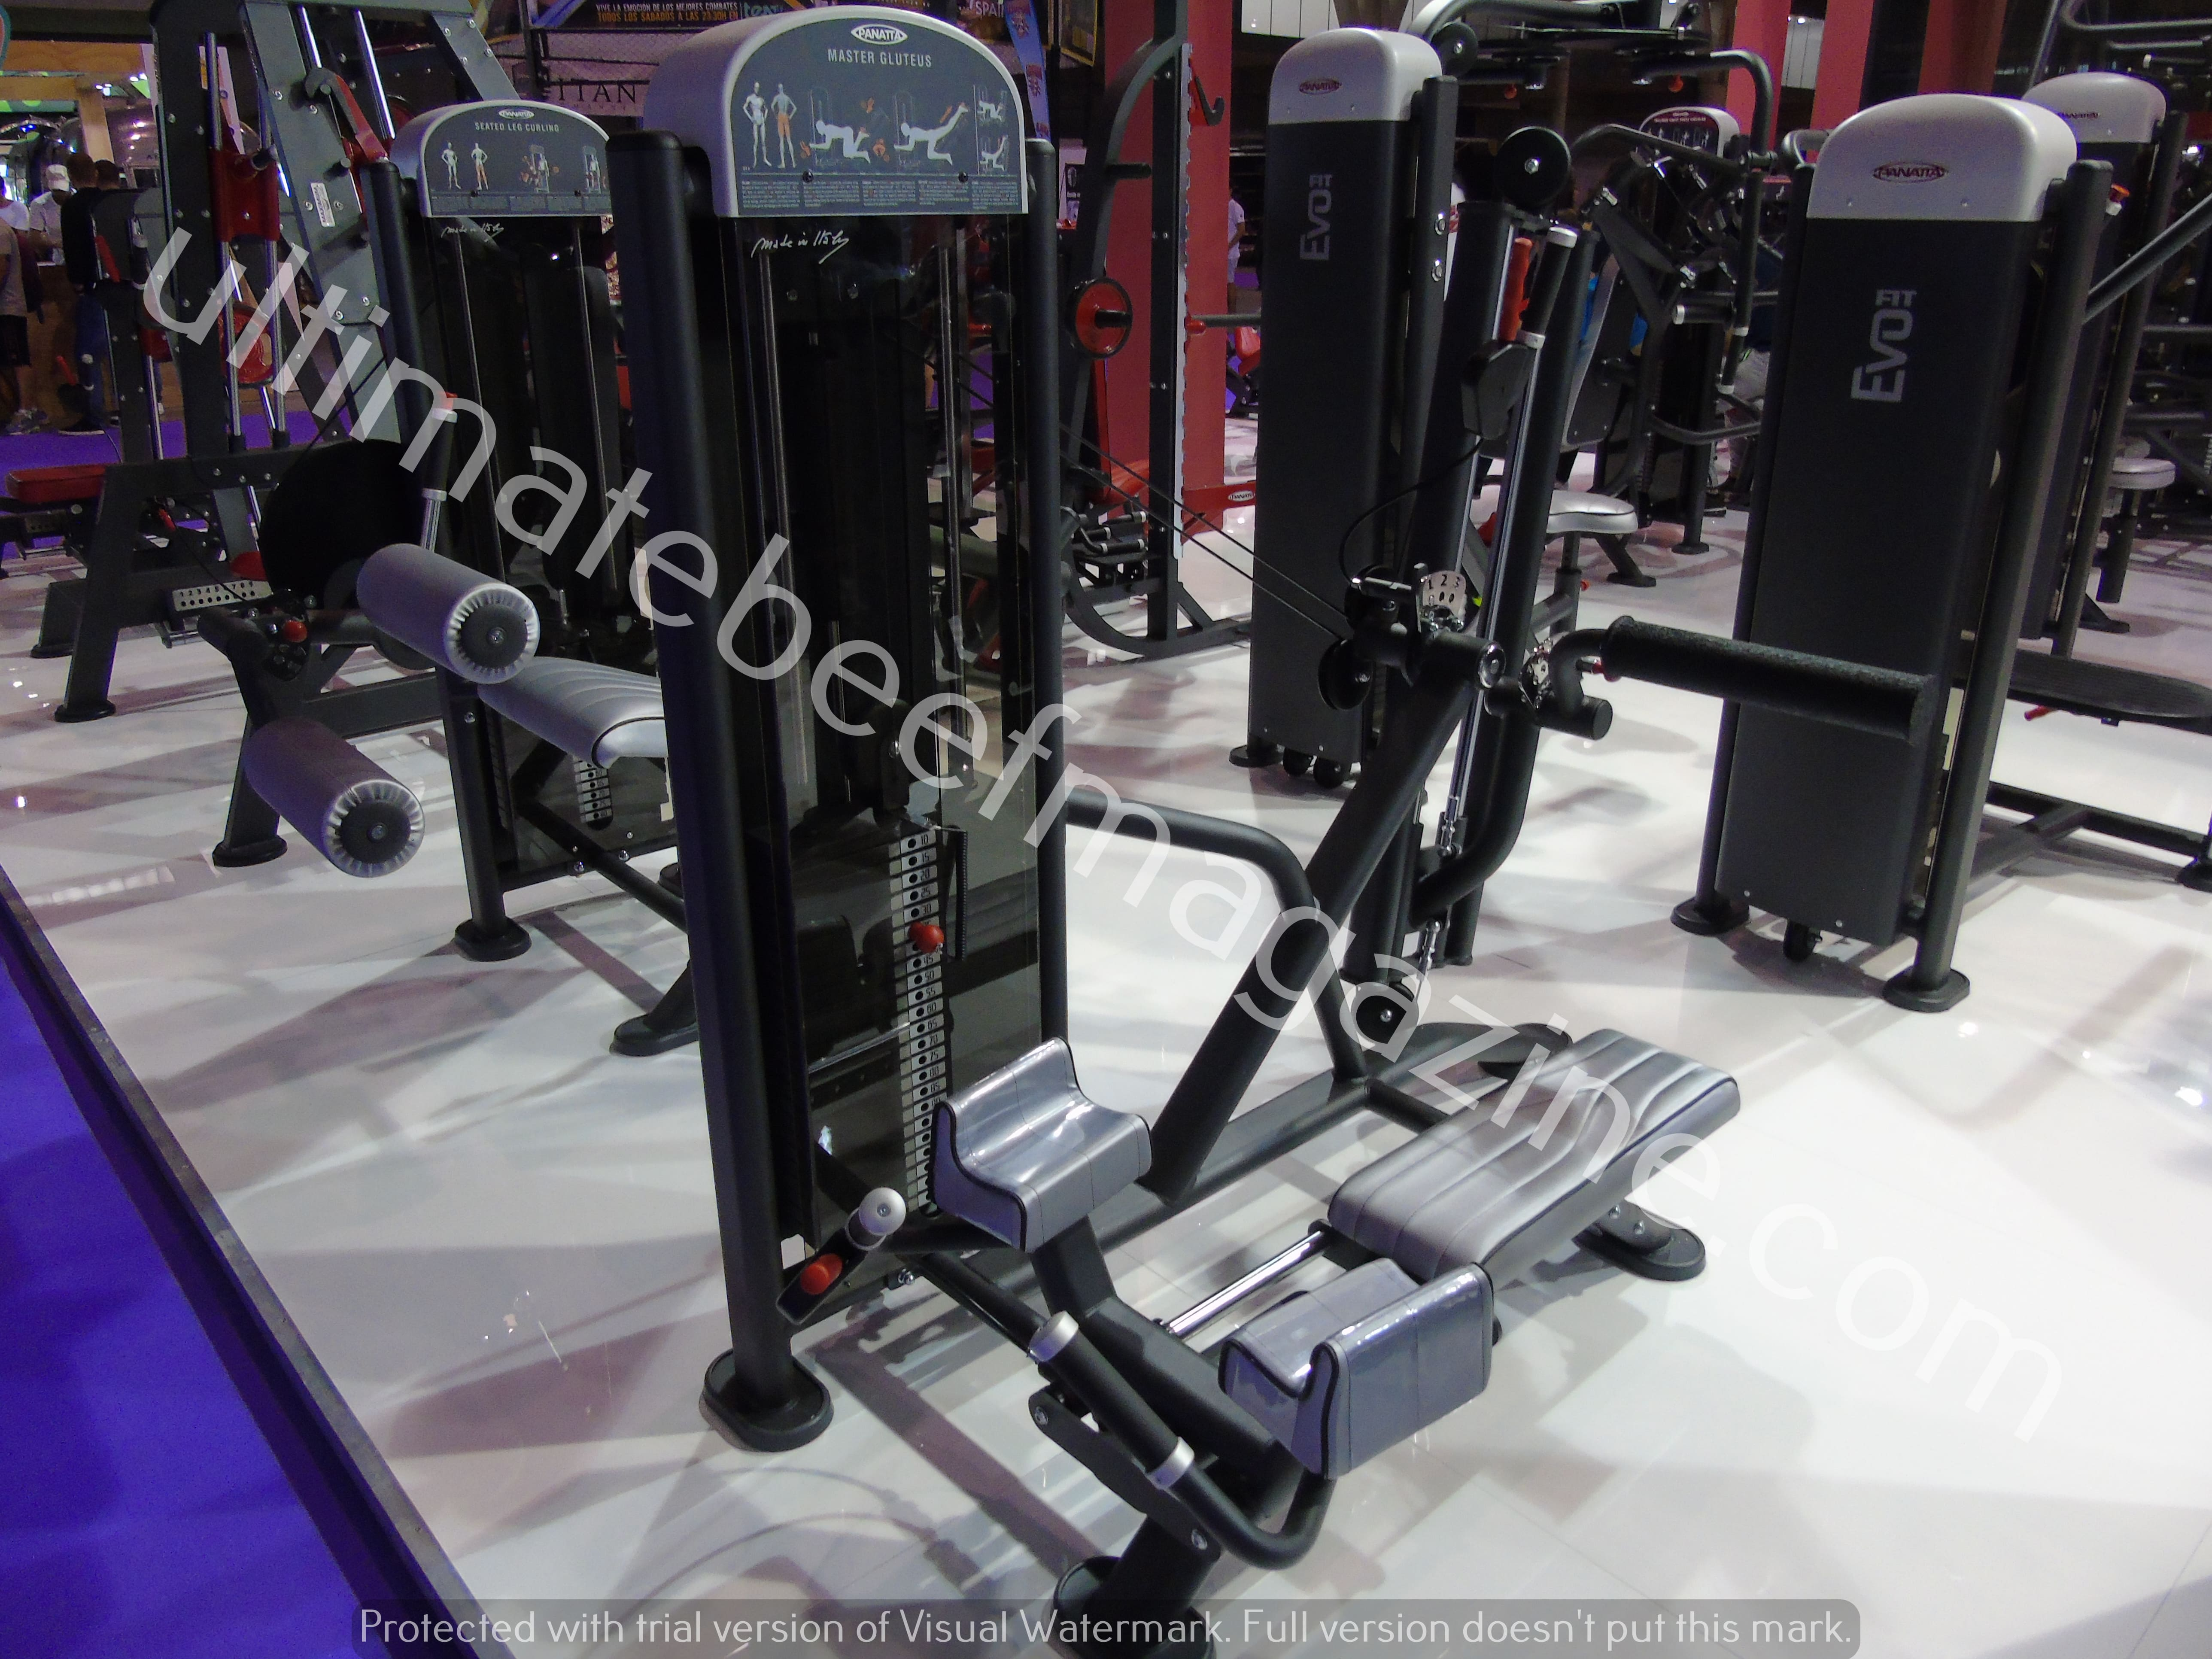 2018 arnold classic europe by underbody